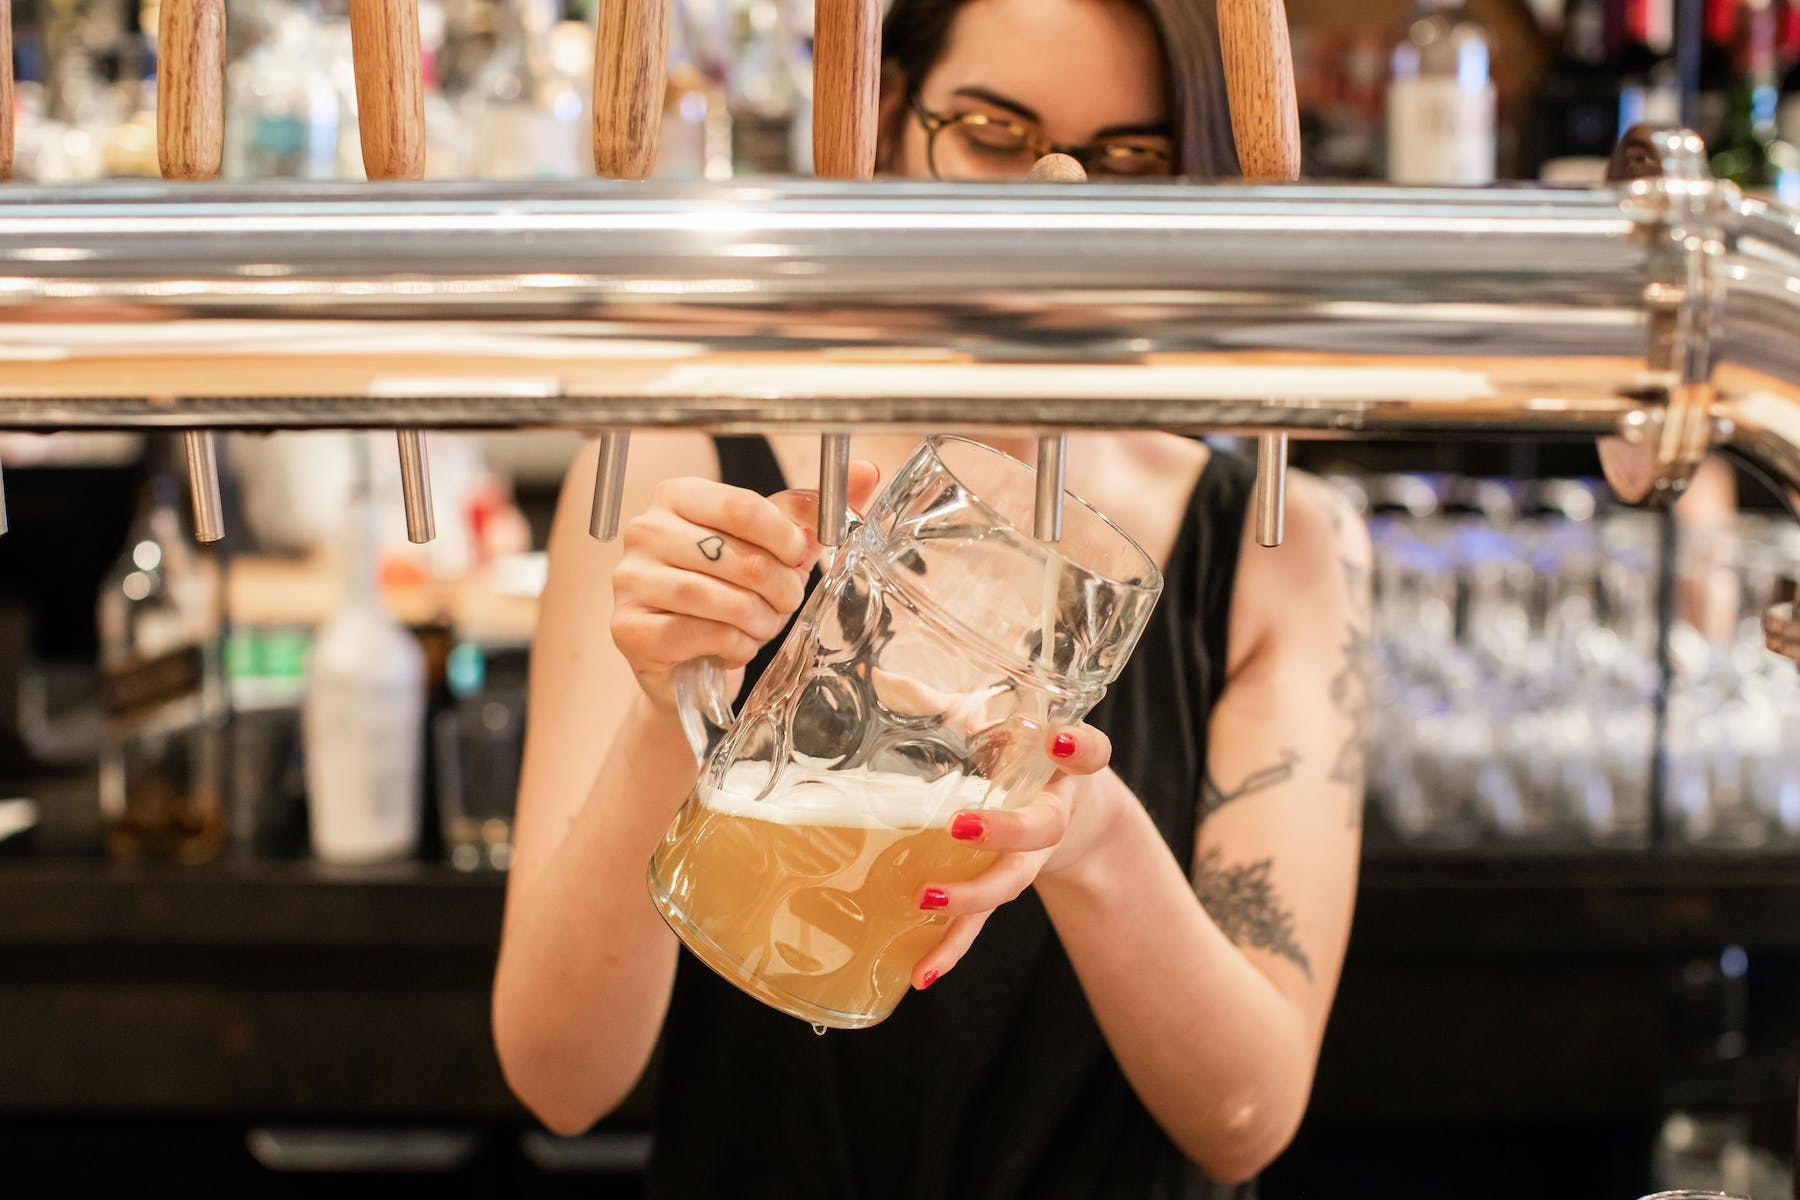 a woman pouring beer into a glass